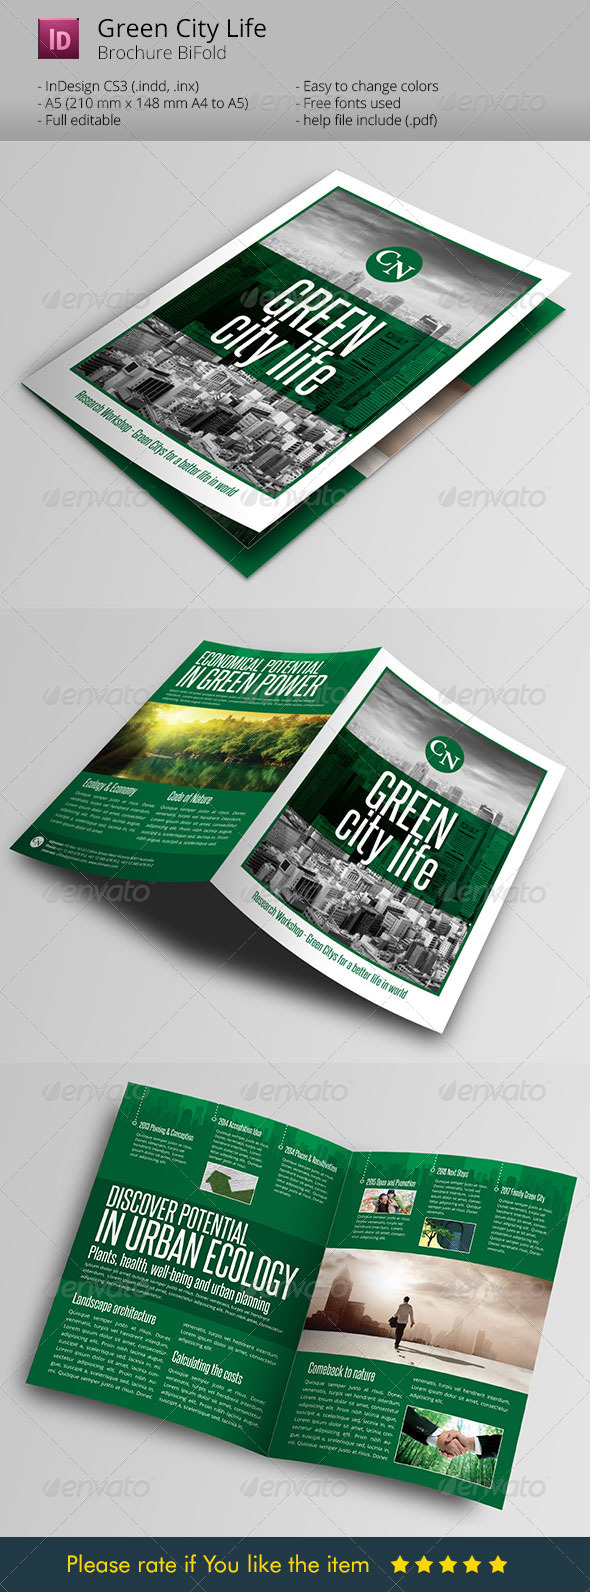 GraphicRiver Green City Life Brochure Indesign Template 6068904